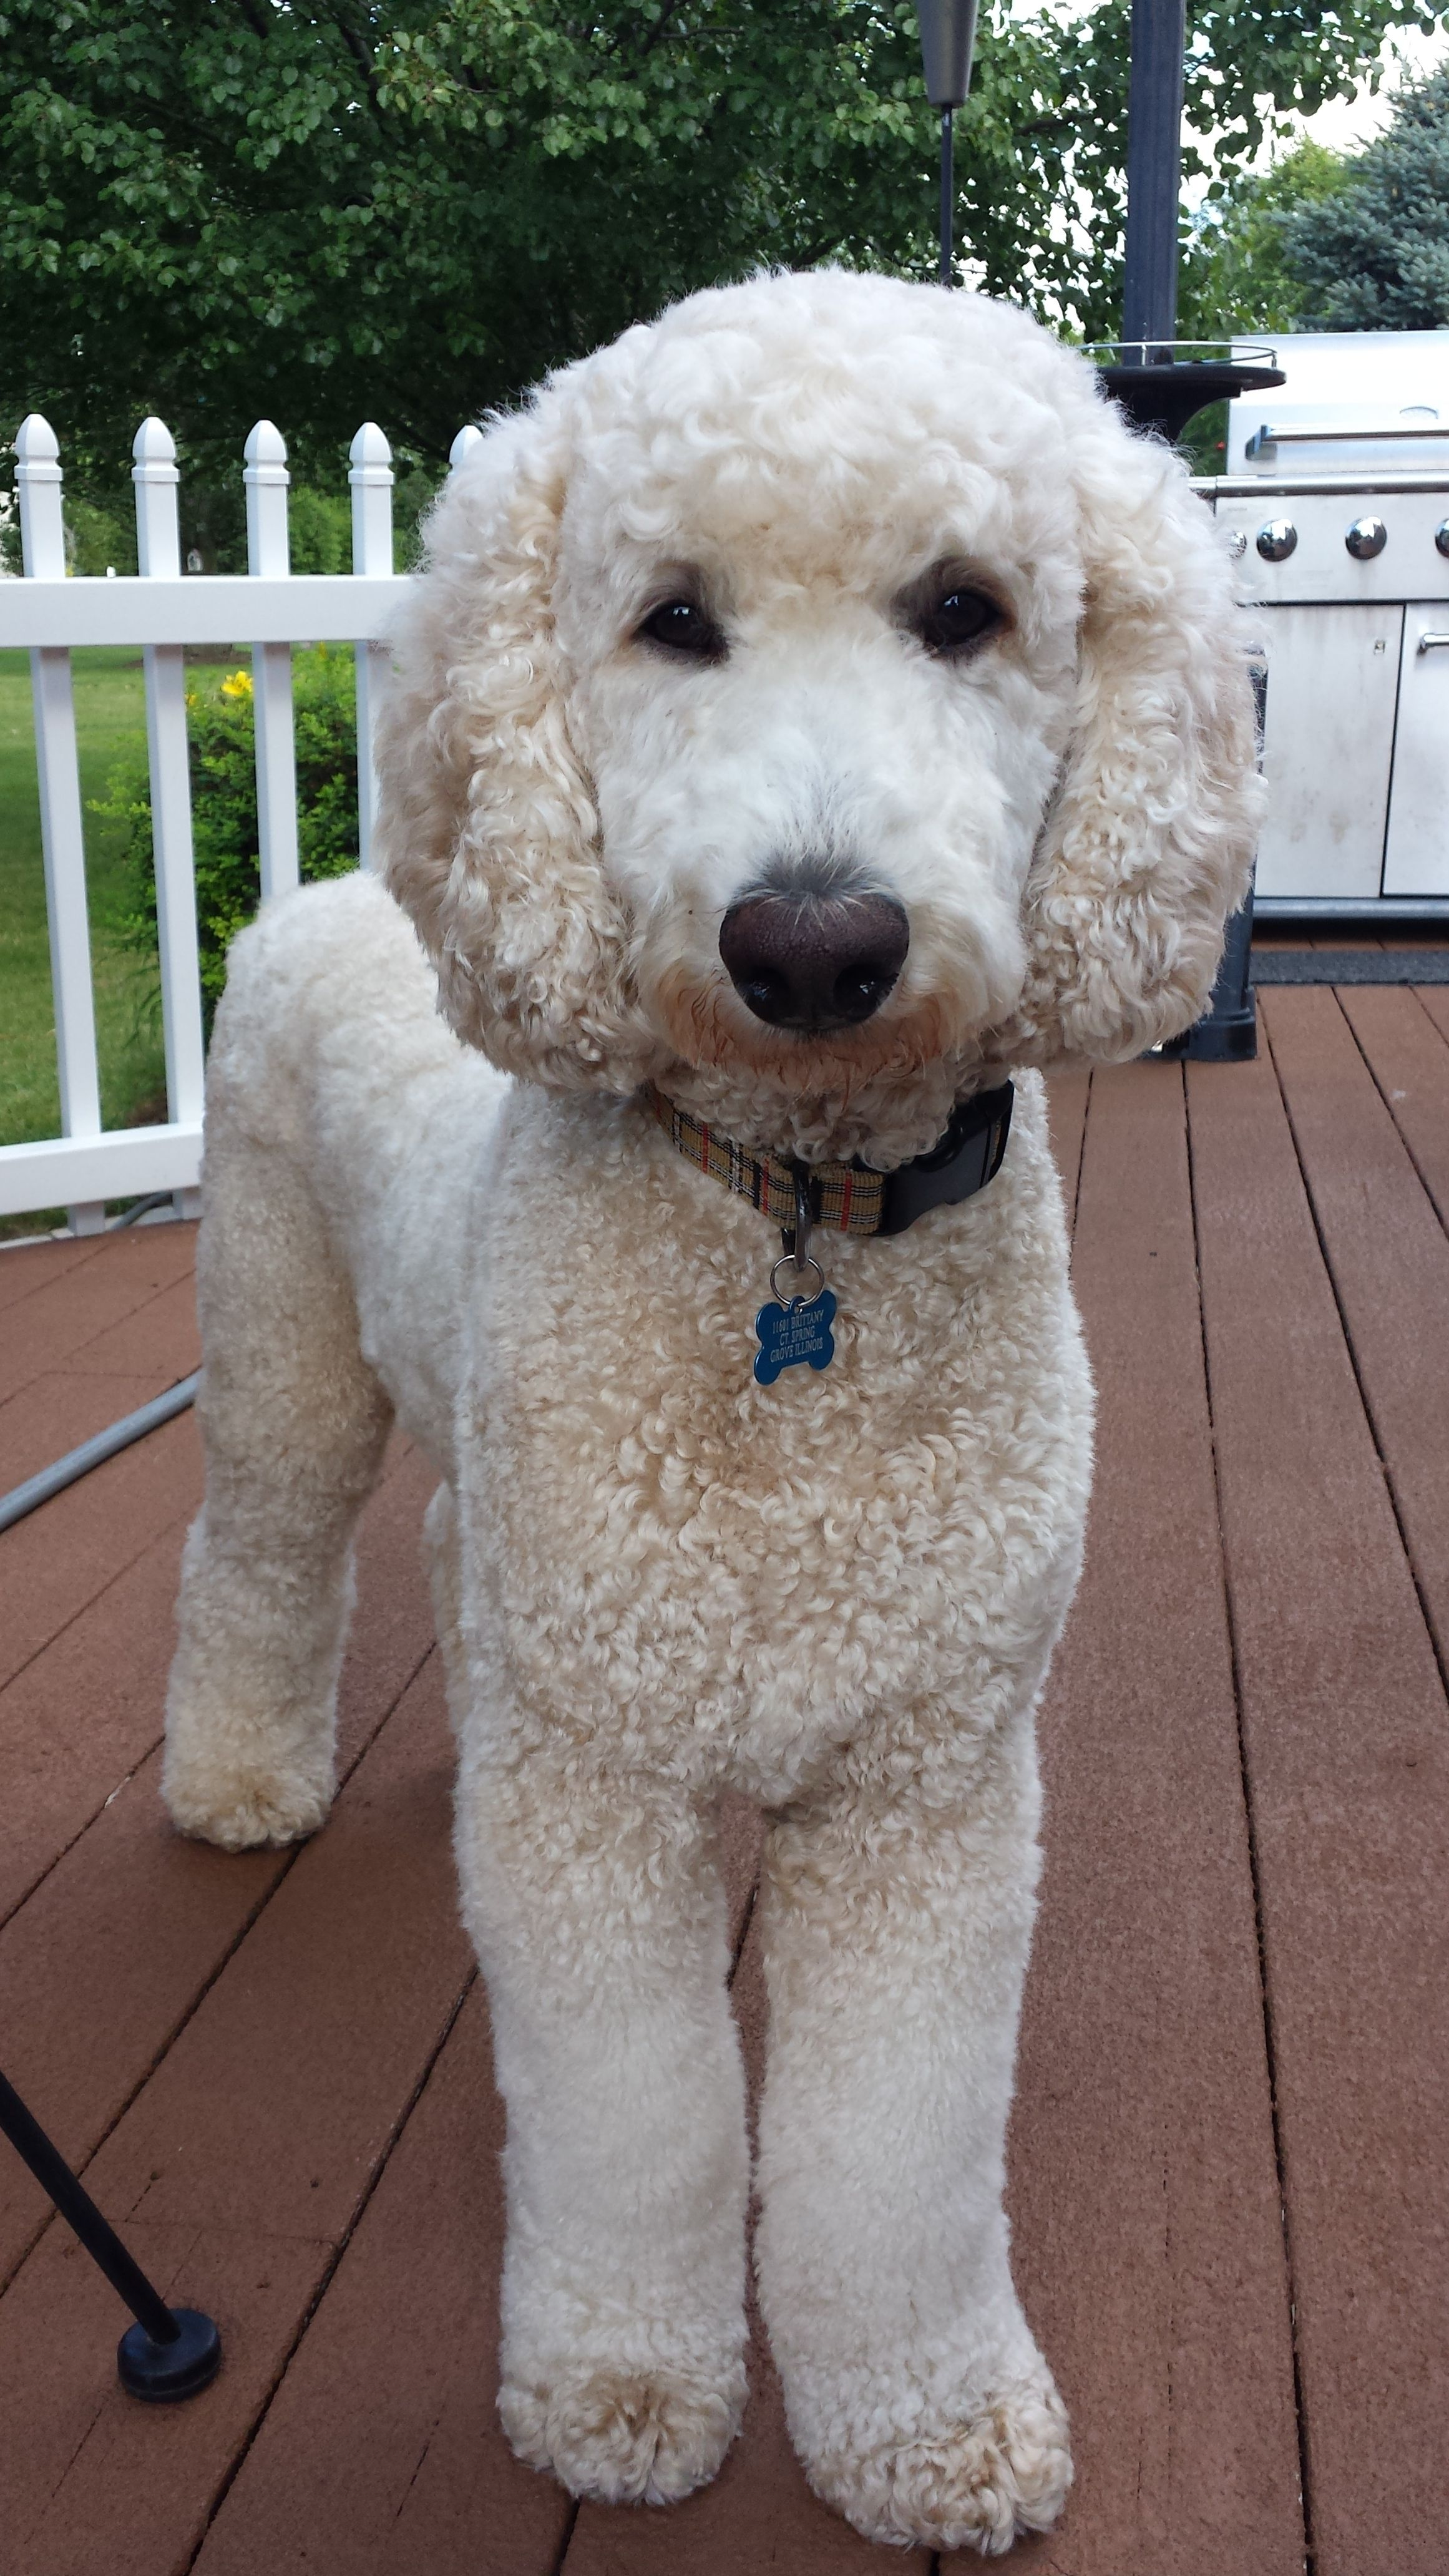 Standard poodle haircuts or of unless soft haircuts standard poodle - Poodles Smart Active And Proud Poodle Groomingpoodle Cutsstandard